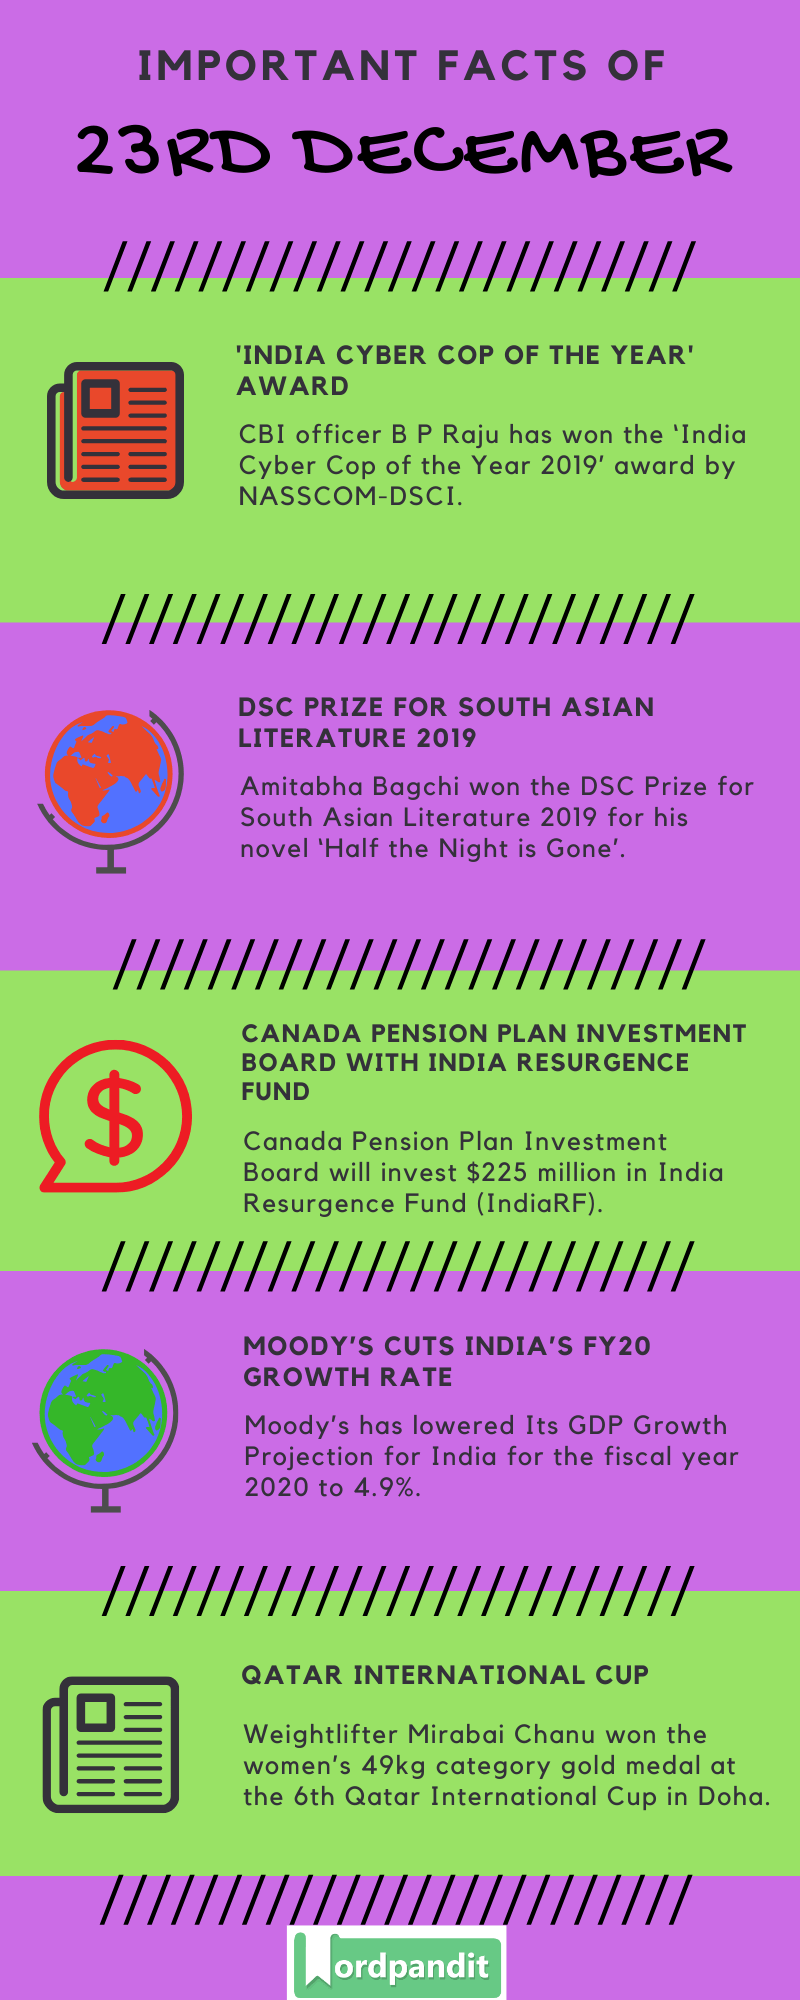 Daily Current Affairs 23 December 2019 Current Affairs Quiz 23 December 2019 Current Affairs Infographic